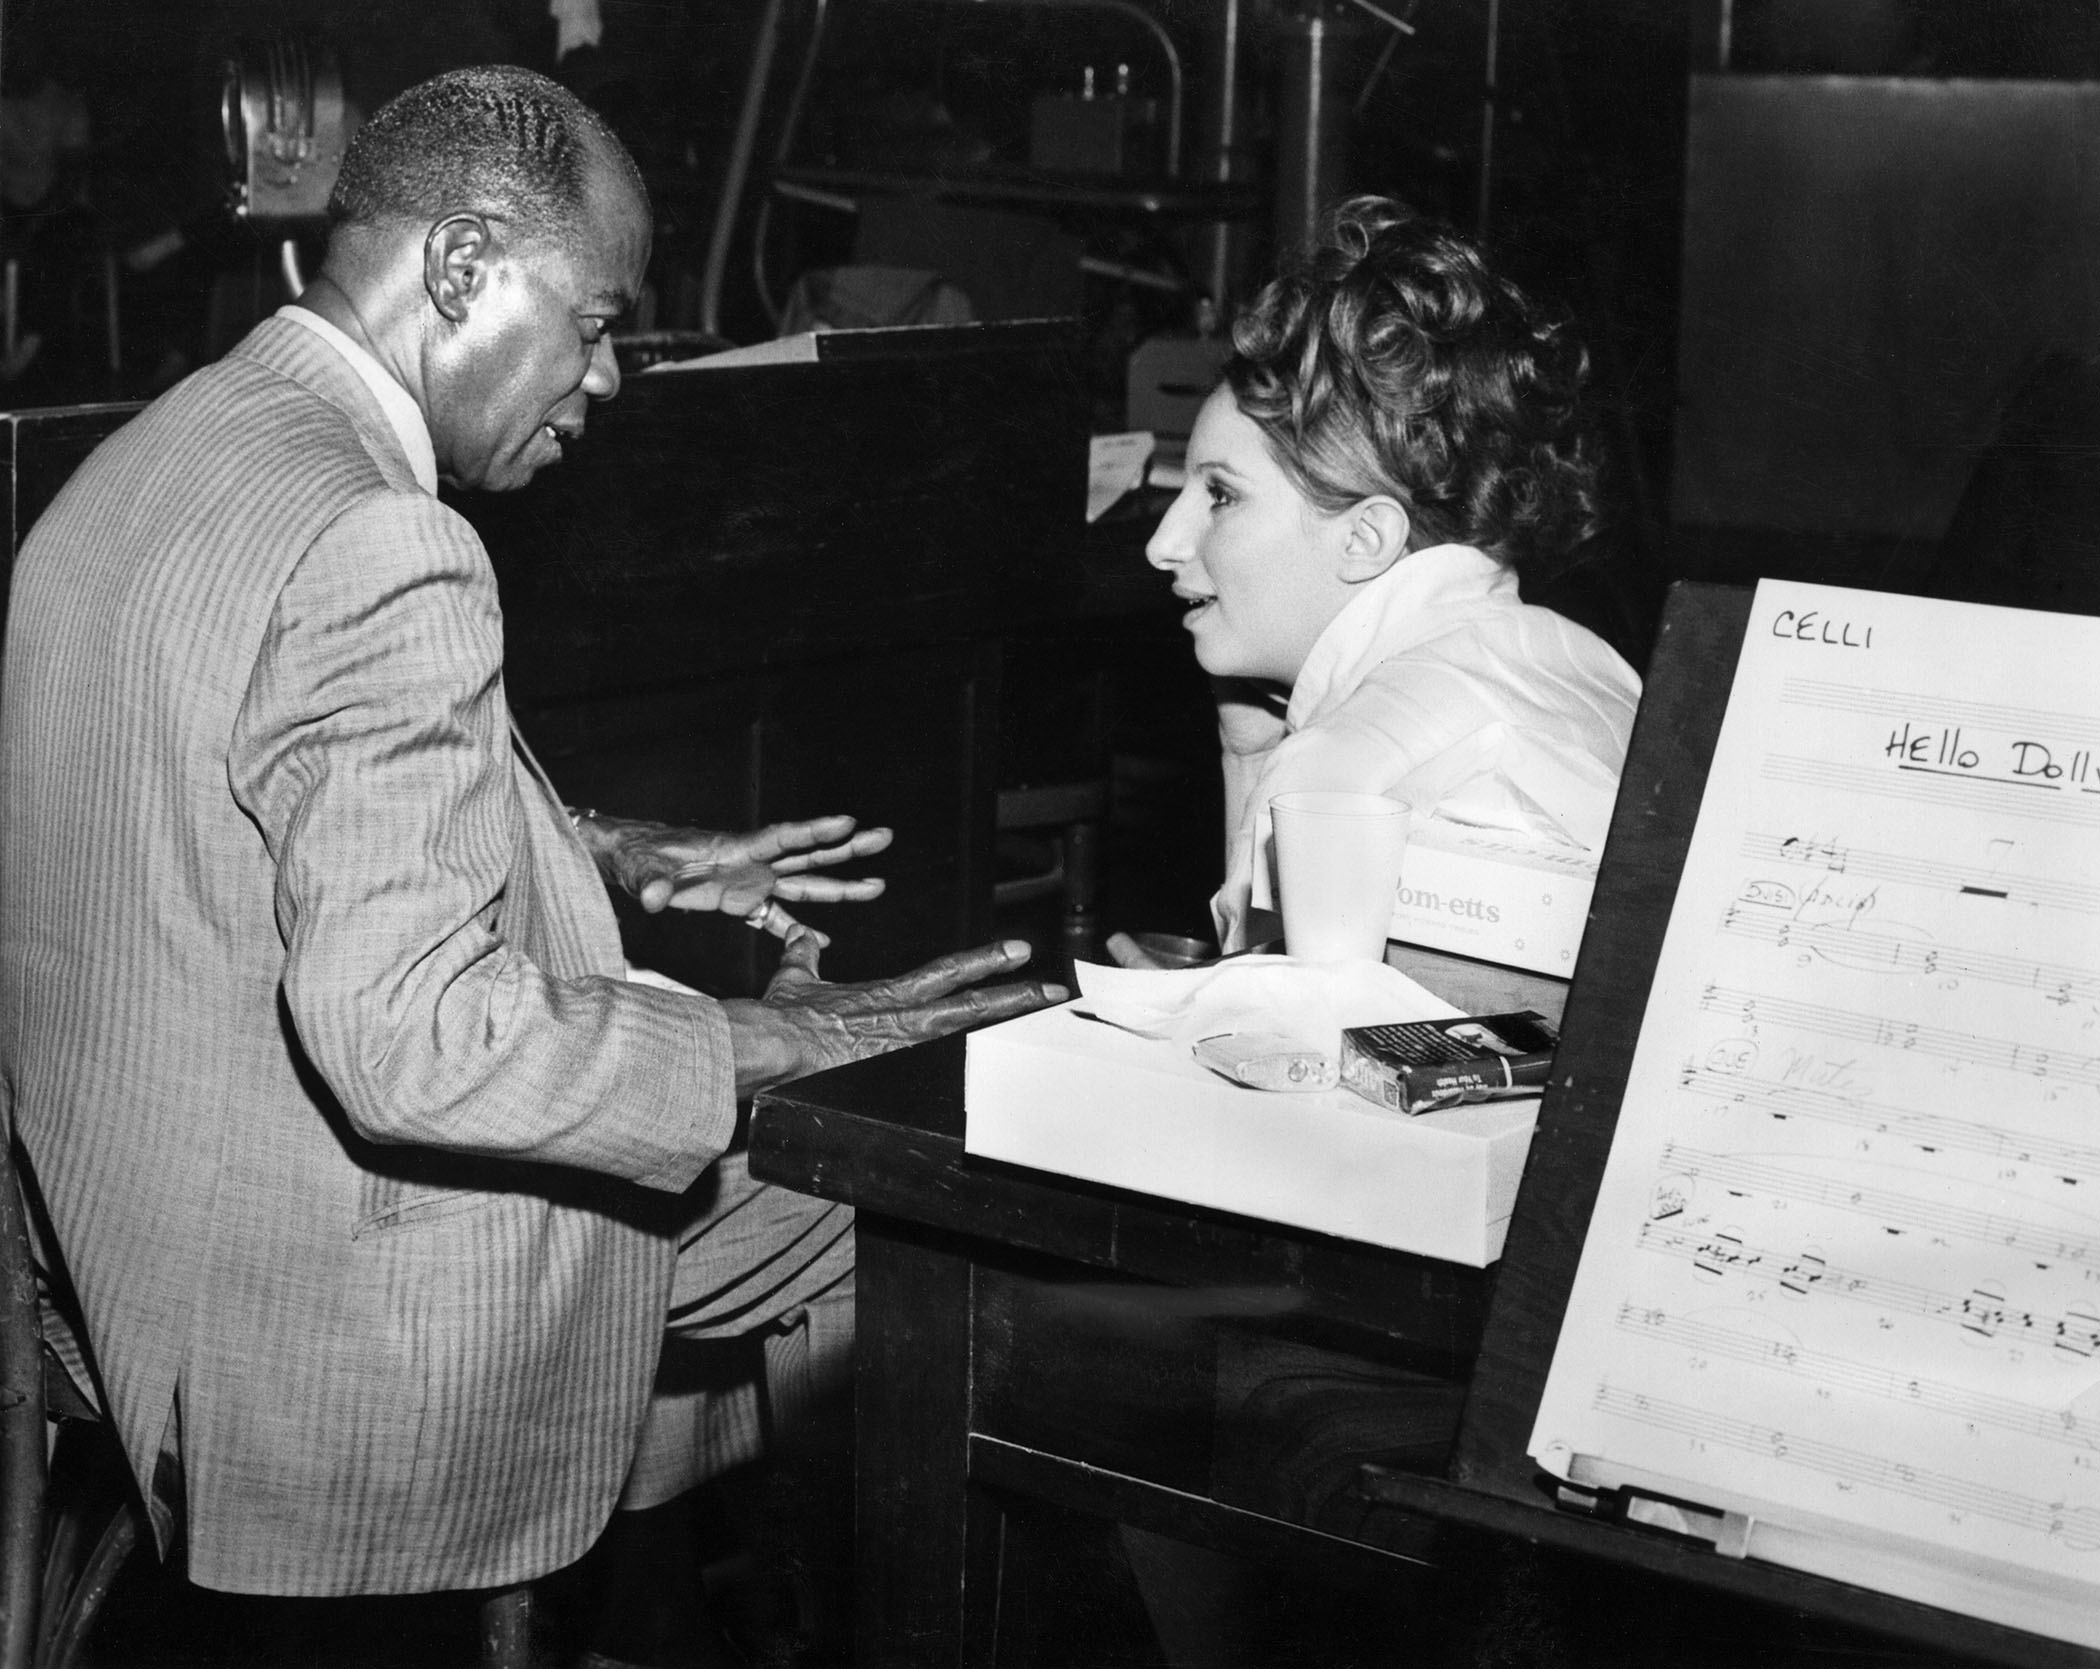 Barbara Streisand and Louis Armstrong